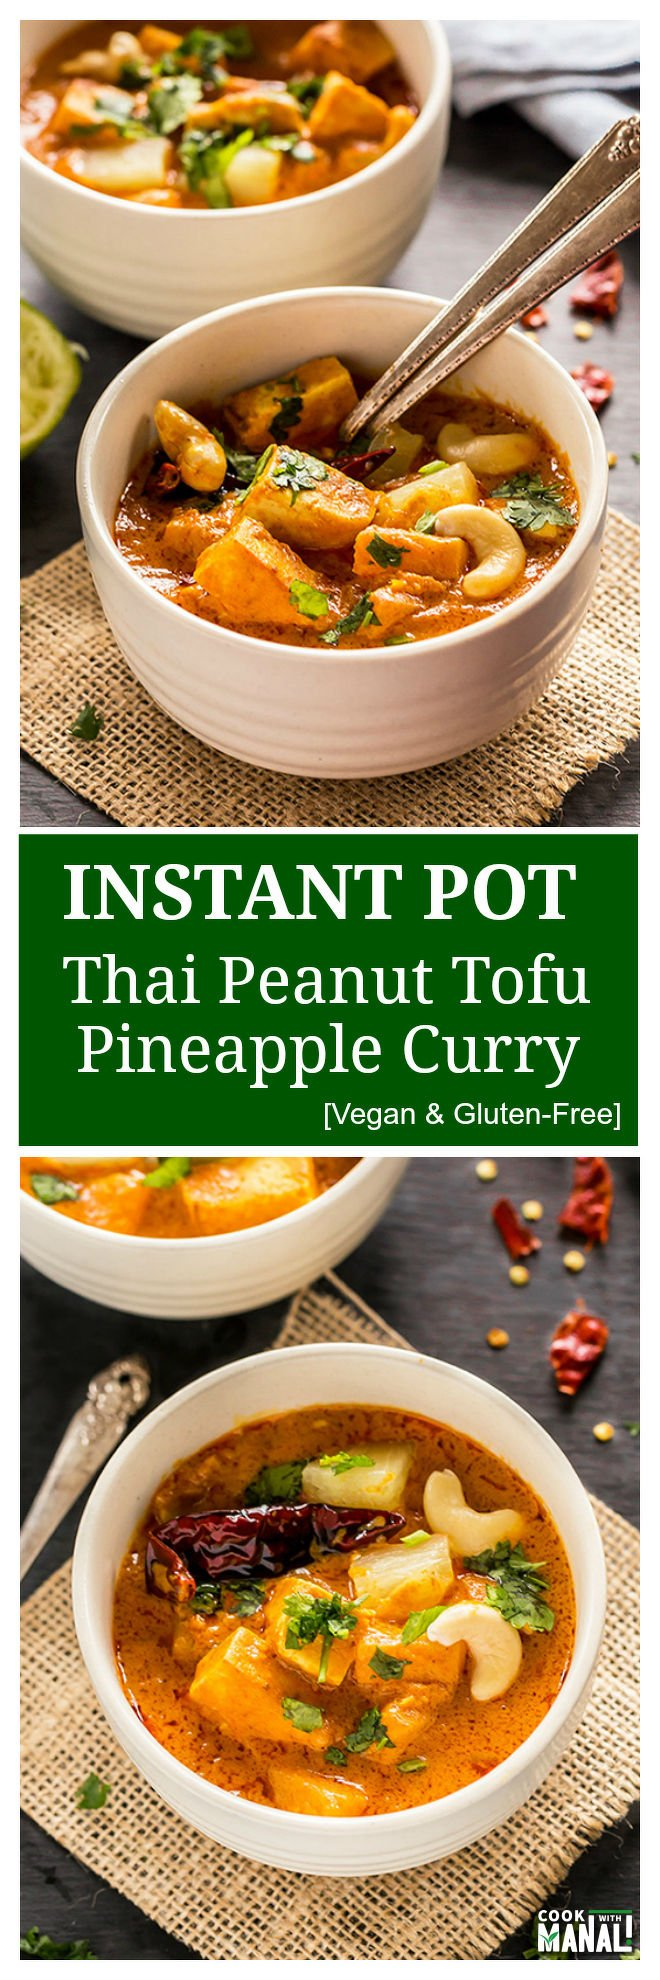 Instant Pot Thai Peanut Tofu Pineapple Curry - Cook With Manali